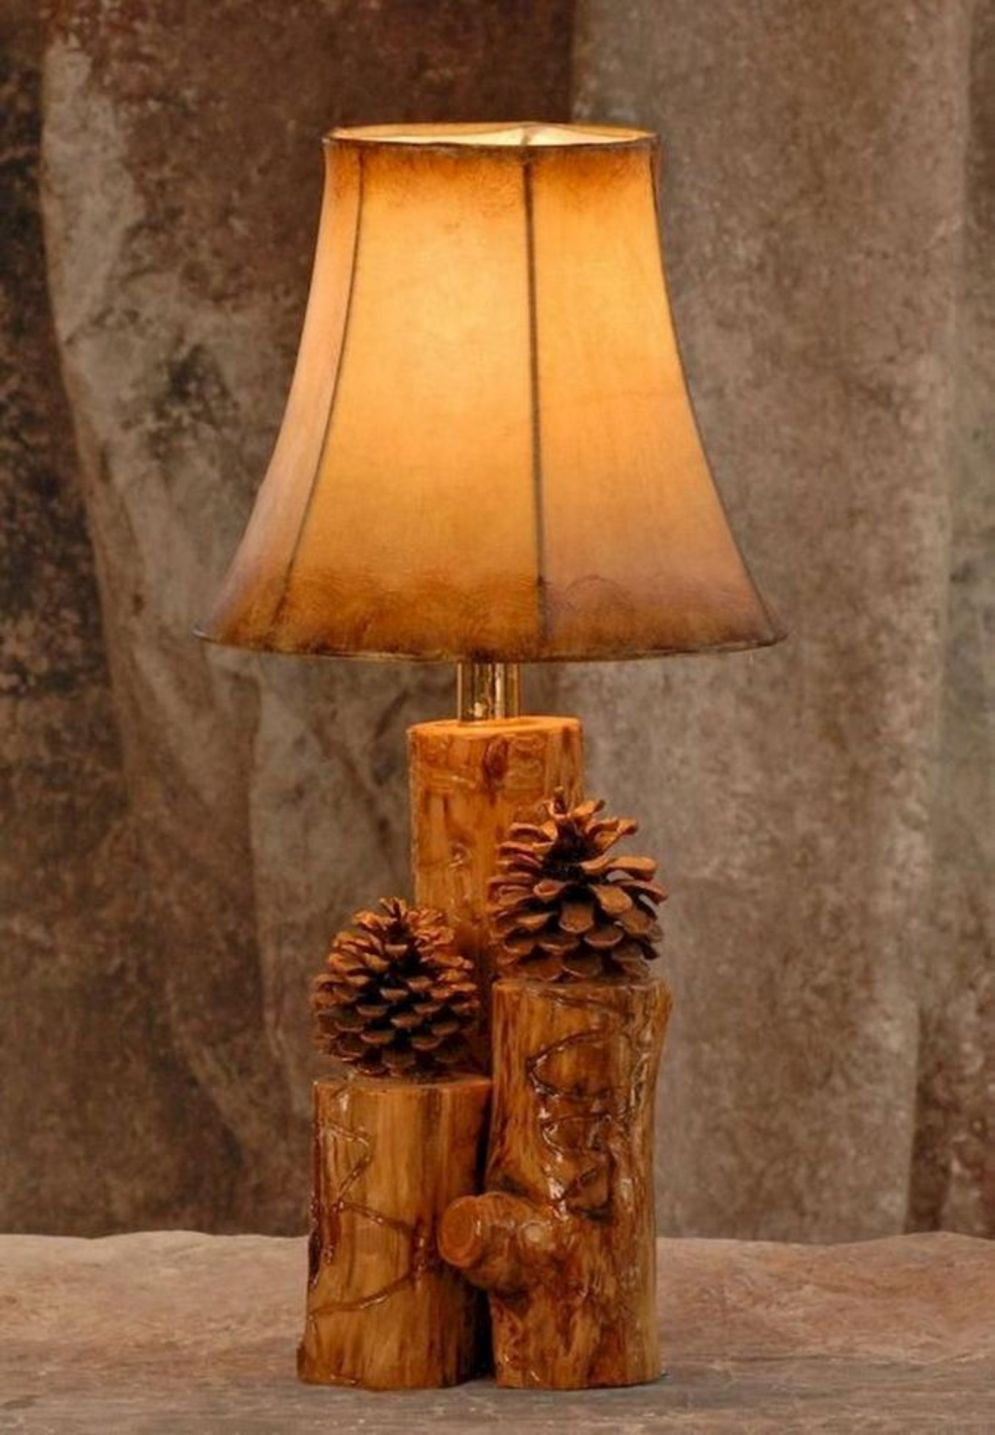 Stunning natural material for Driftwood lamp decoration creating an incredible ambiance Image 24